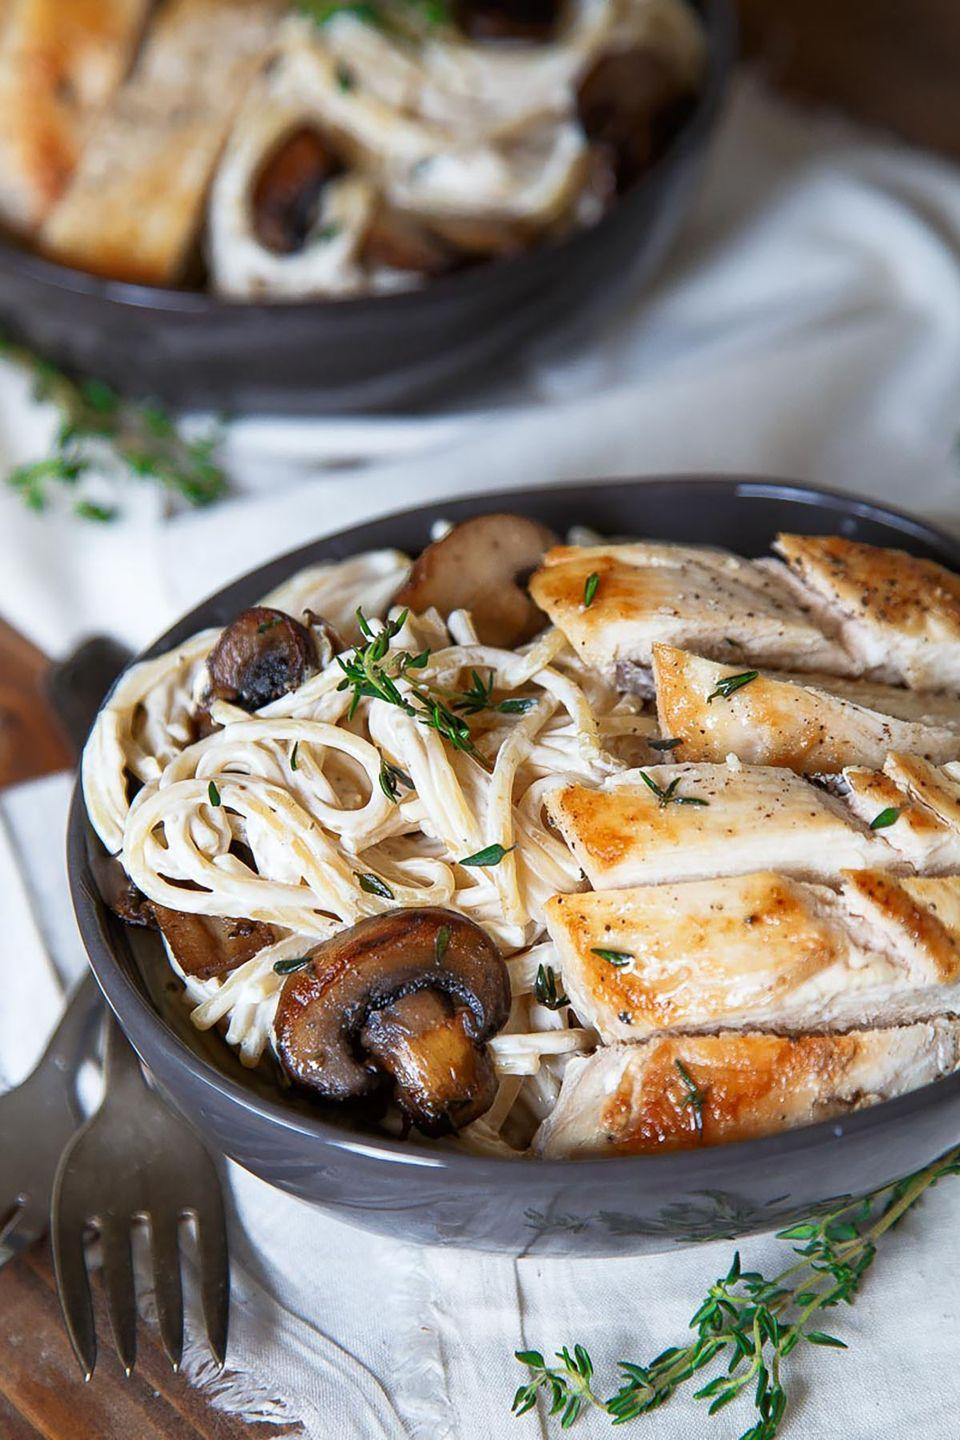 """<p>Creamy pasta, mushrooms, and """"engagement"""" chicken are a winning combination, whether you're waiting on that magic question or long married.</p><p><strong>Get the recipe at <a href=""""http://www.dessertfortwo.com/dinner-for-two-engagement-pasta/"""" rel=""""nofollow noopener"""" target=""""_blank"""" data-ylk=""""slk:Dessert for Two"""" class=""""link rapid-noclick-resp"""">Dessert for Two</a>.</strong> </p>"""